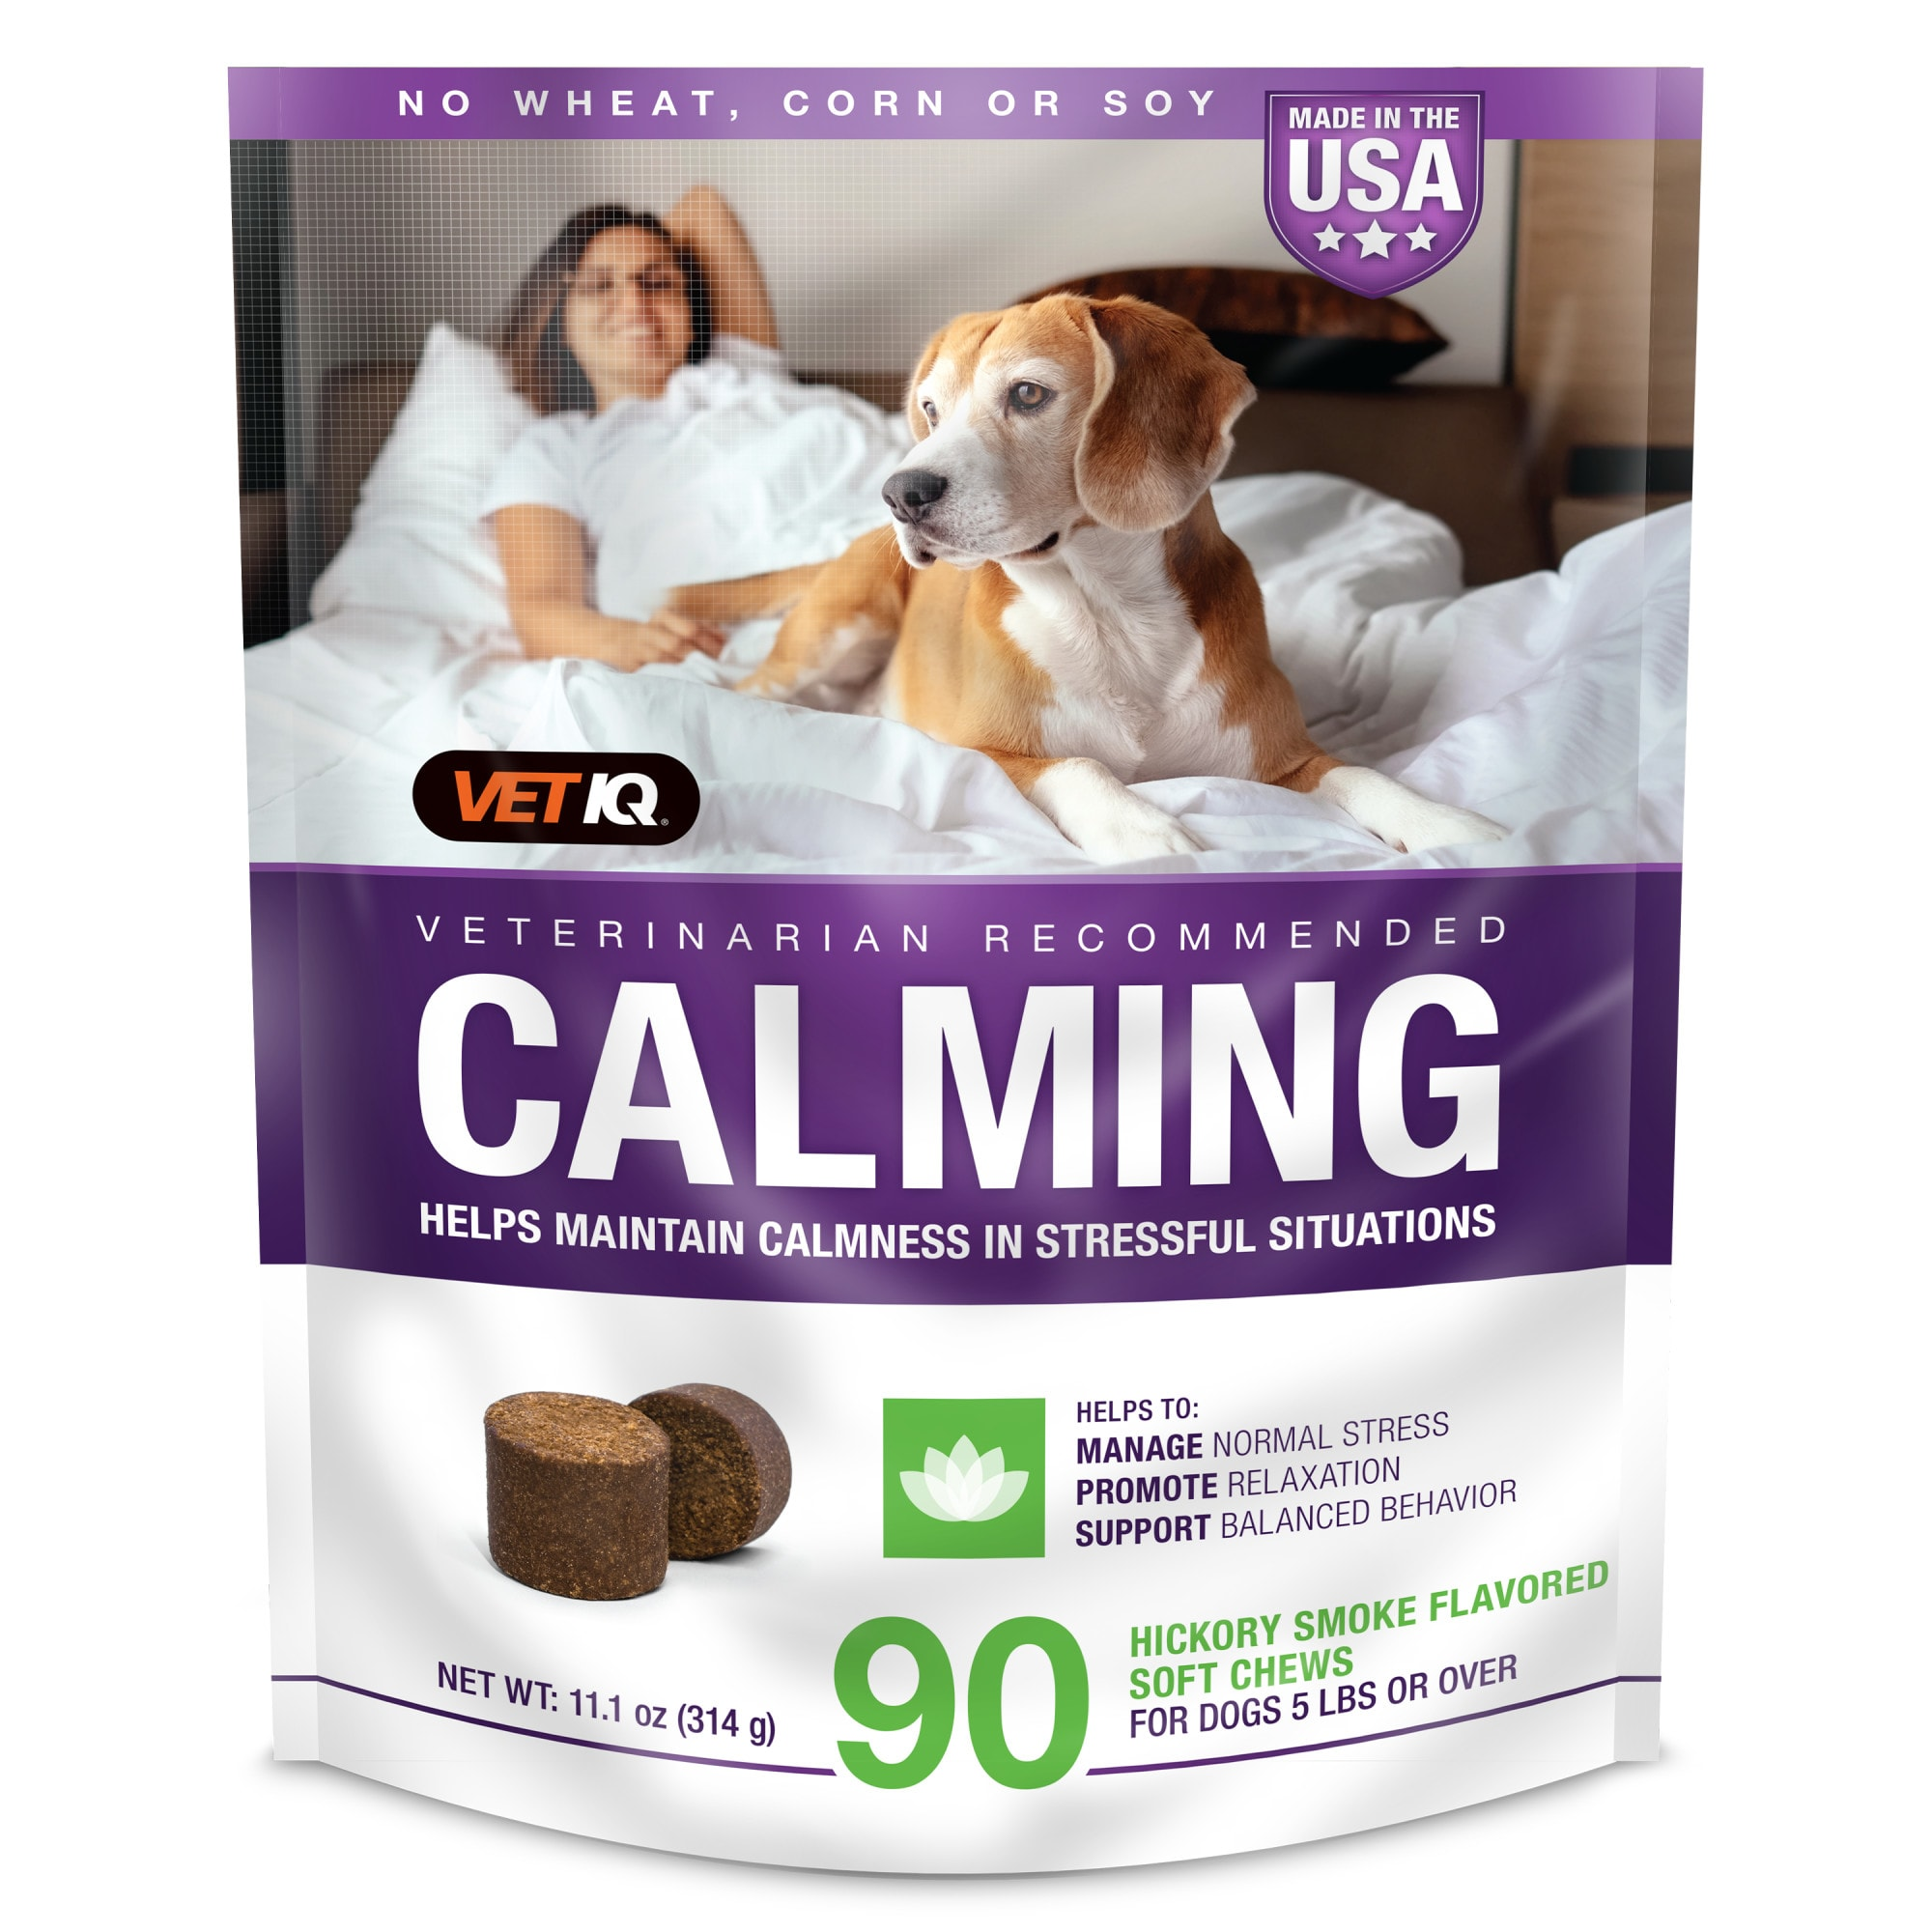 VetIQ Calming Hickory Smoke Flavored Dog Soft Chews, 11.1 oz., Count of 90